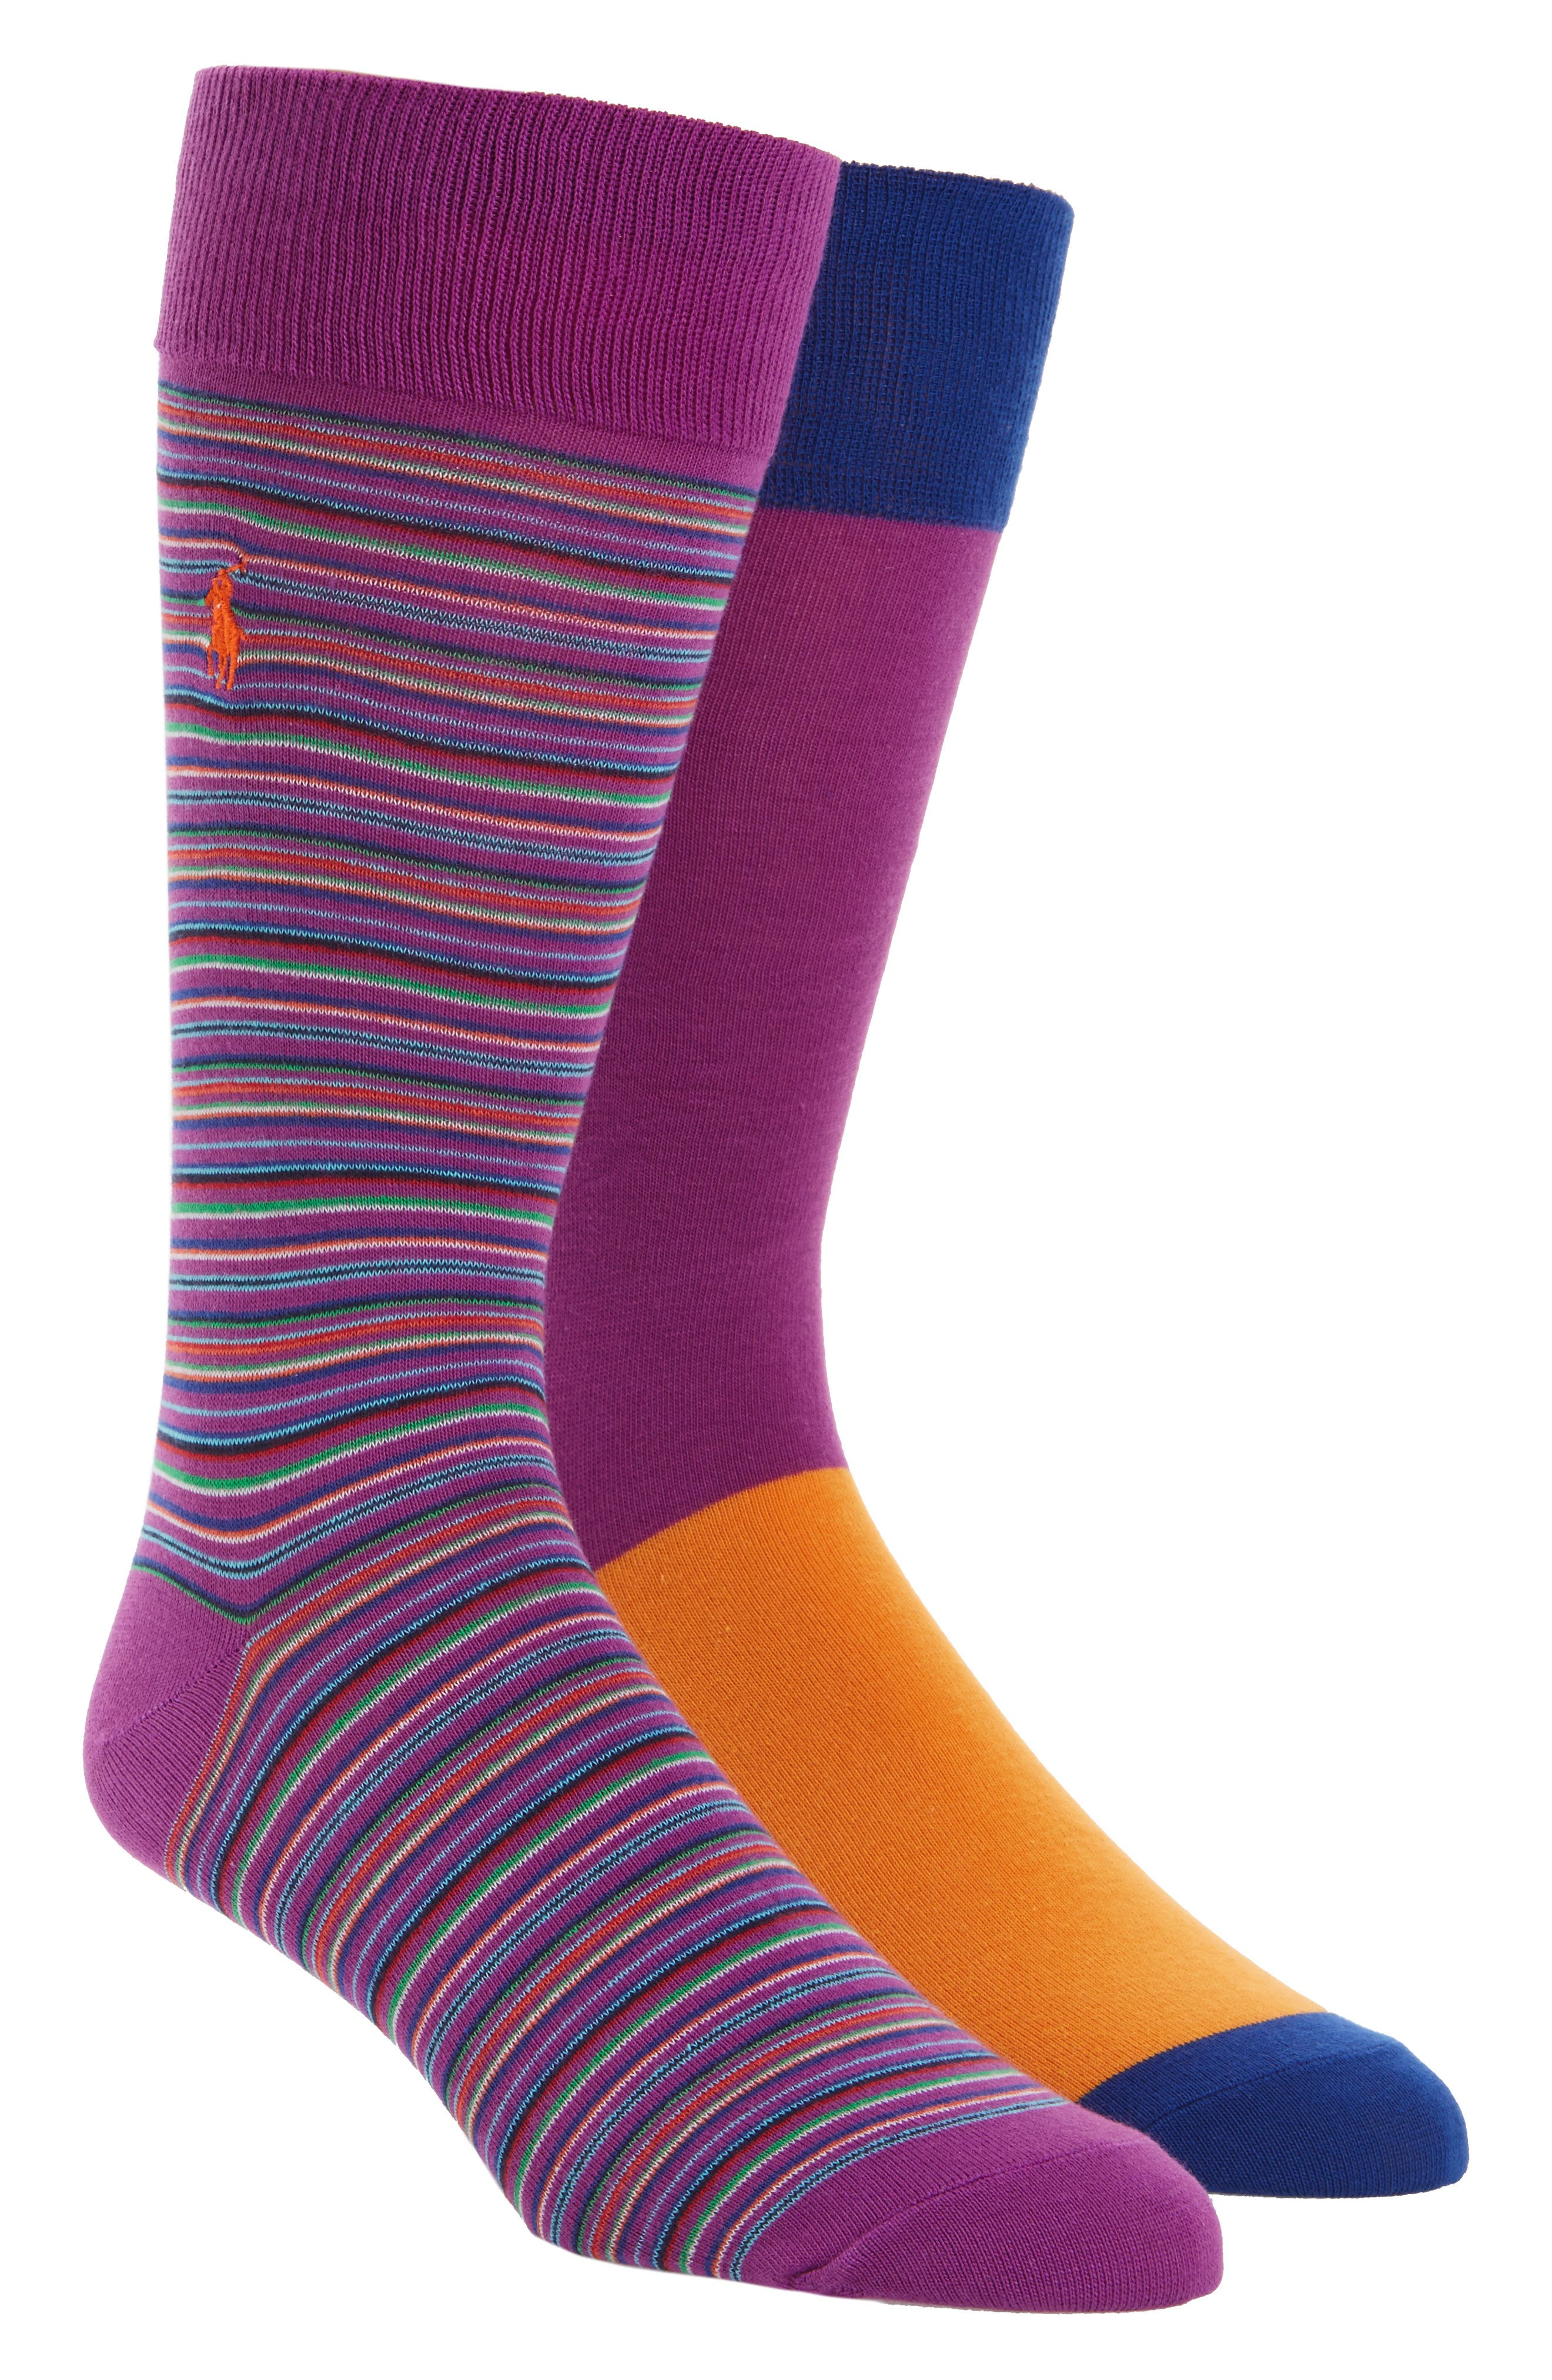 Stripe 2-Pack Socks,                             Main thumbnail 1, color,                             Purple/ Stripe Purple